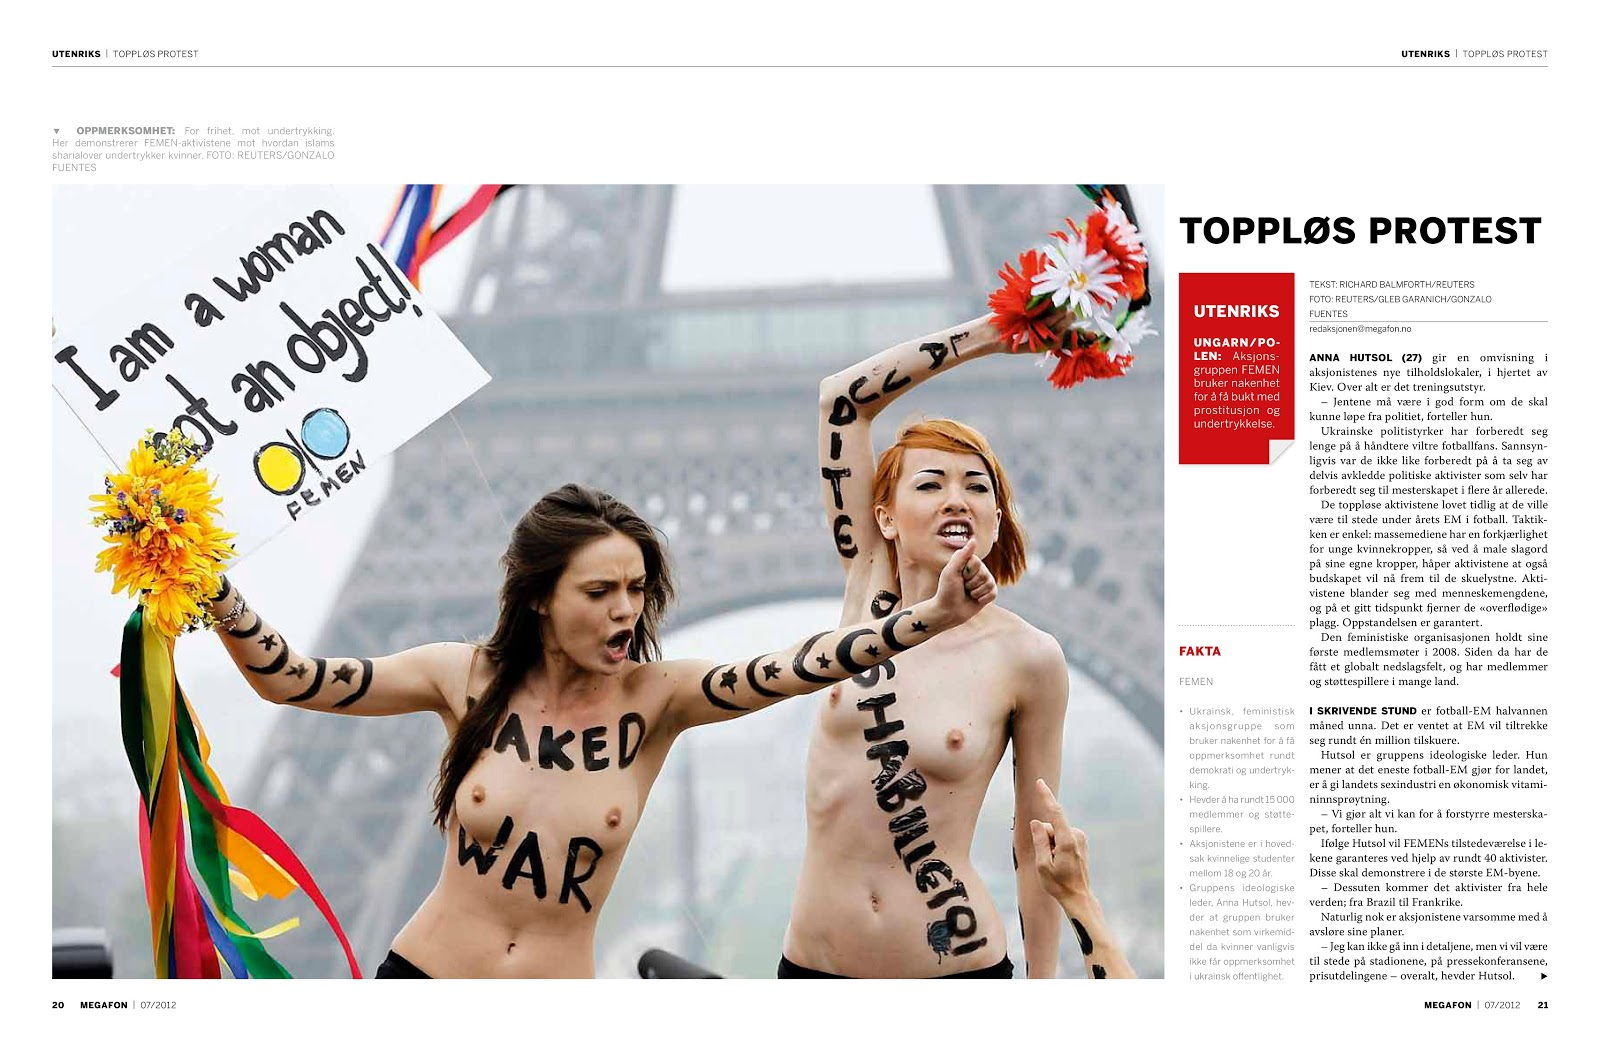 Page 43 Insp Group Shop Cheap From China Suppliers At Alwaysbetter On The Topless Activists Of Ukraines Femen Womens Rights Made Name In Norway Street Paper Megafon Ran A Story About Whose